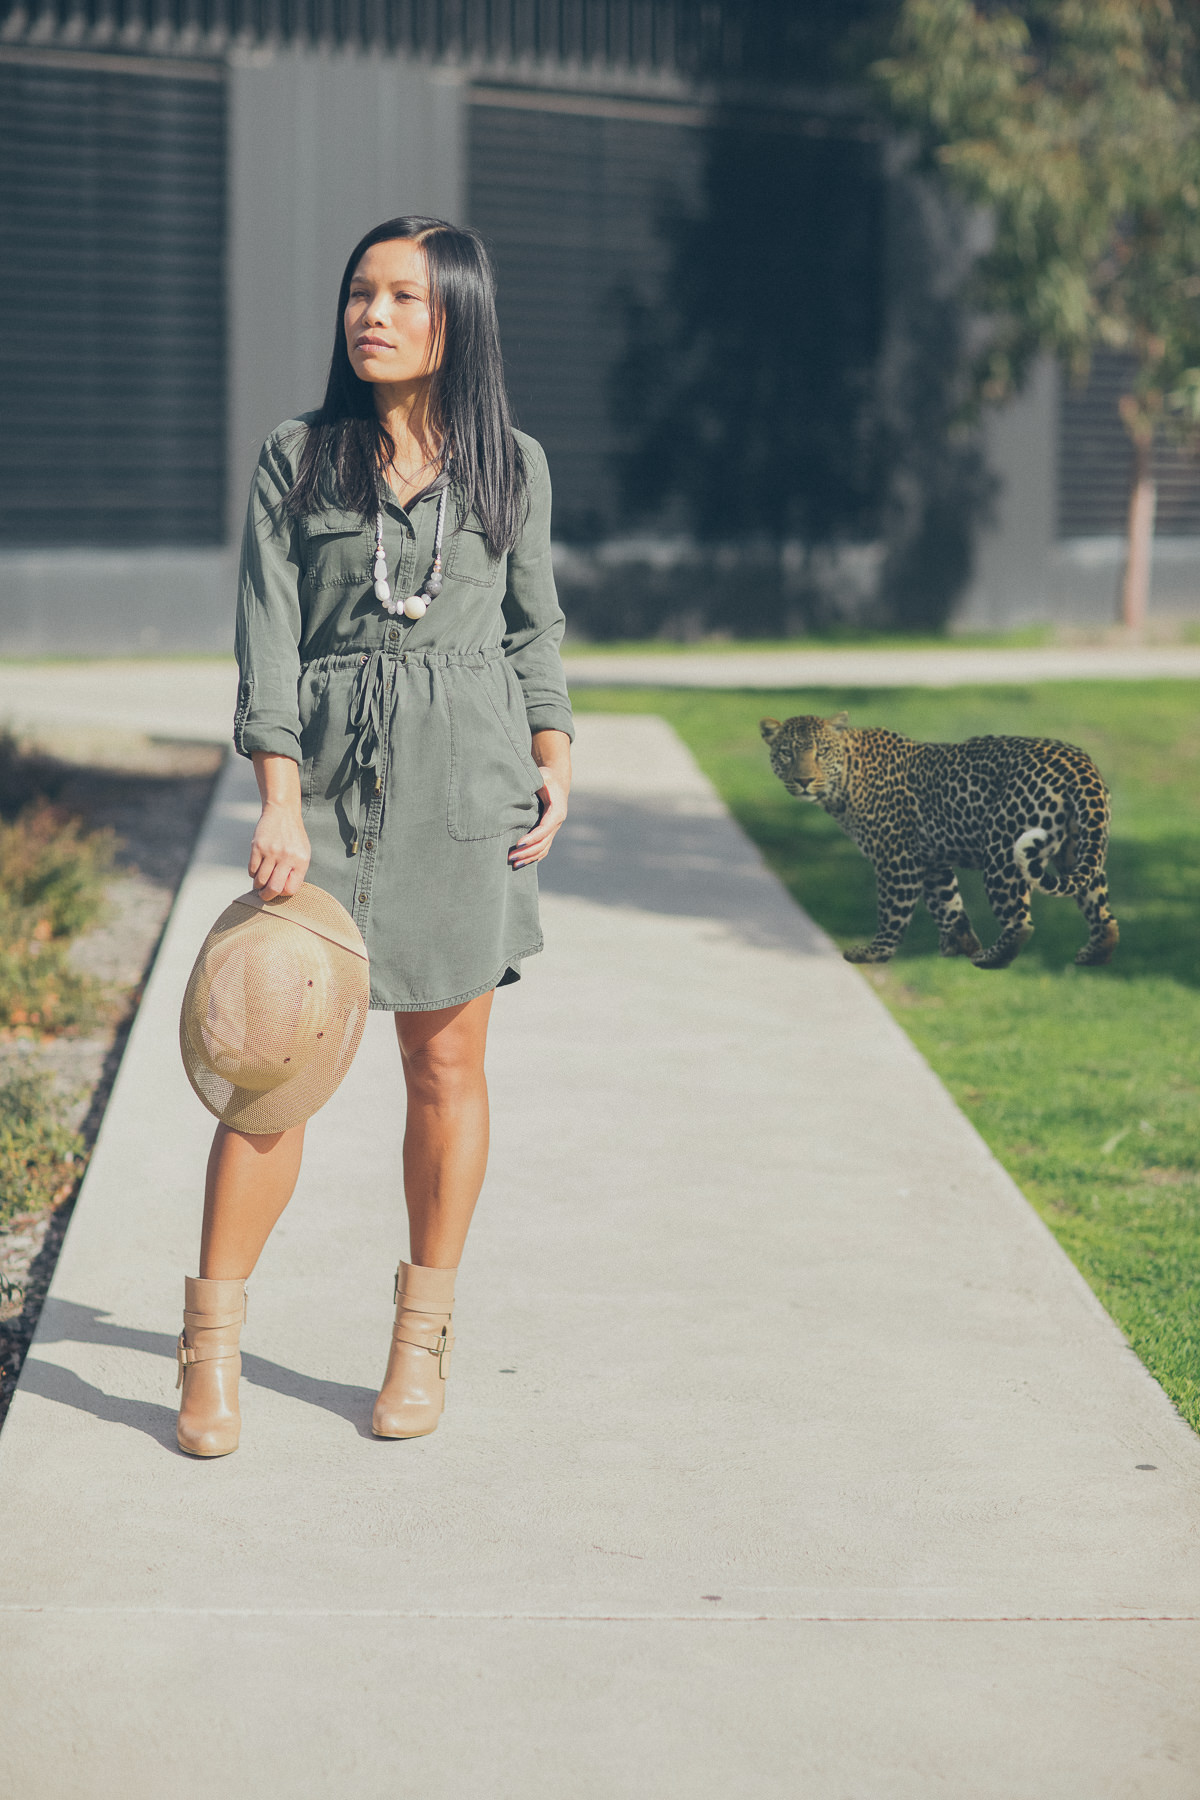 spring safari in Melbourne Australia - Urban fashion trends